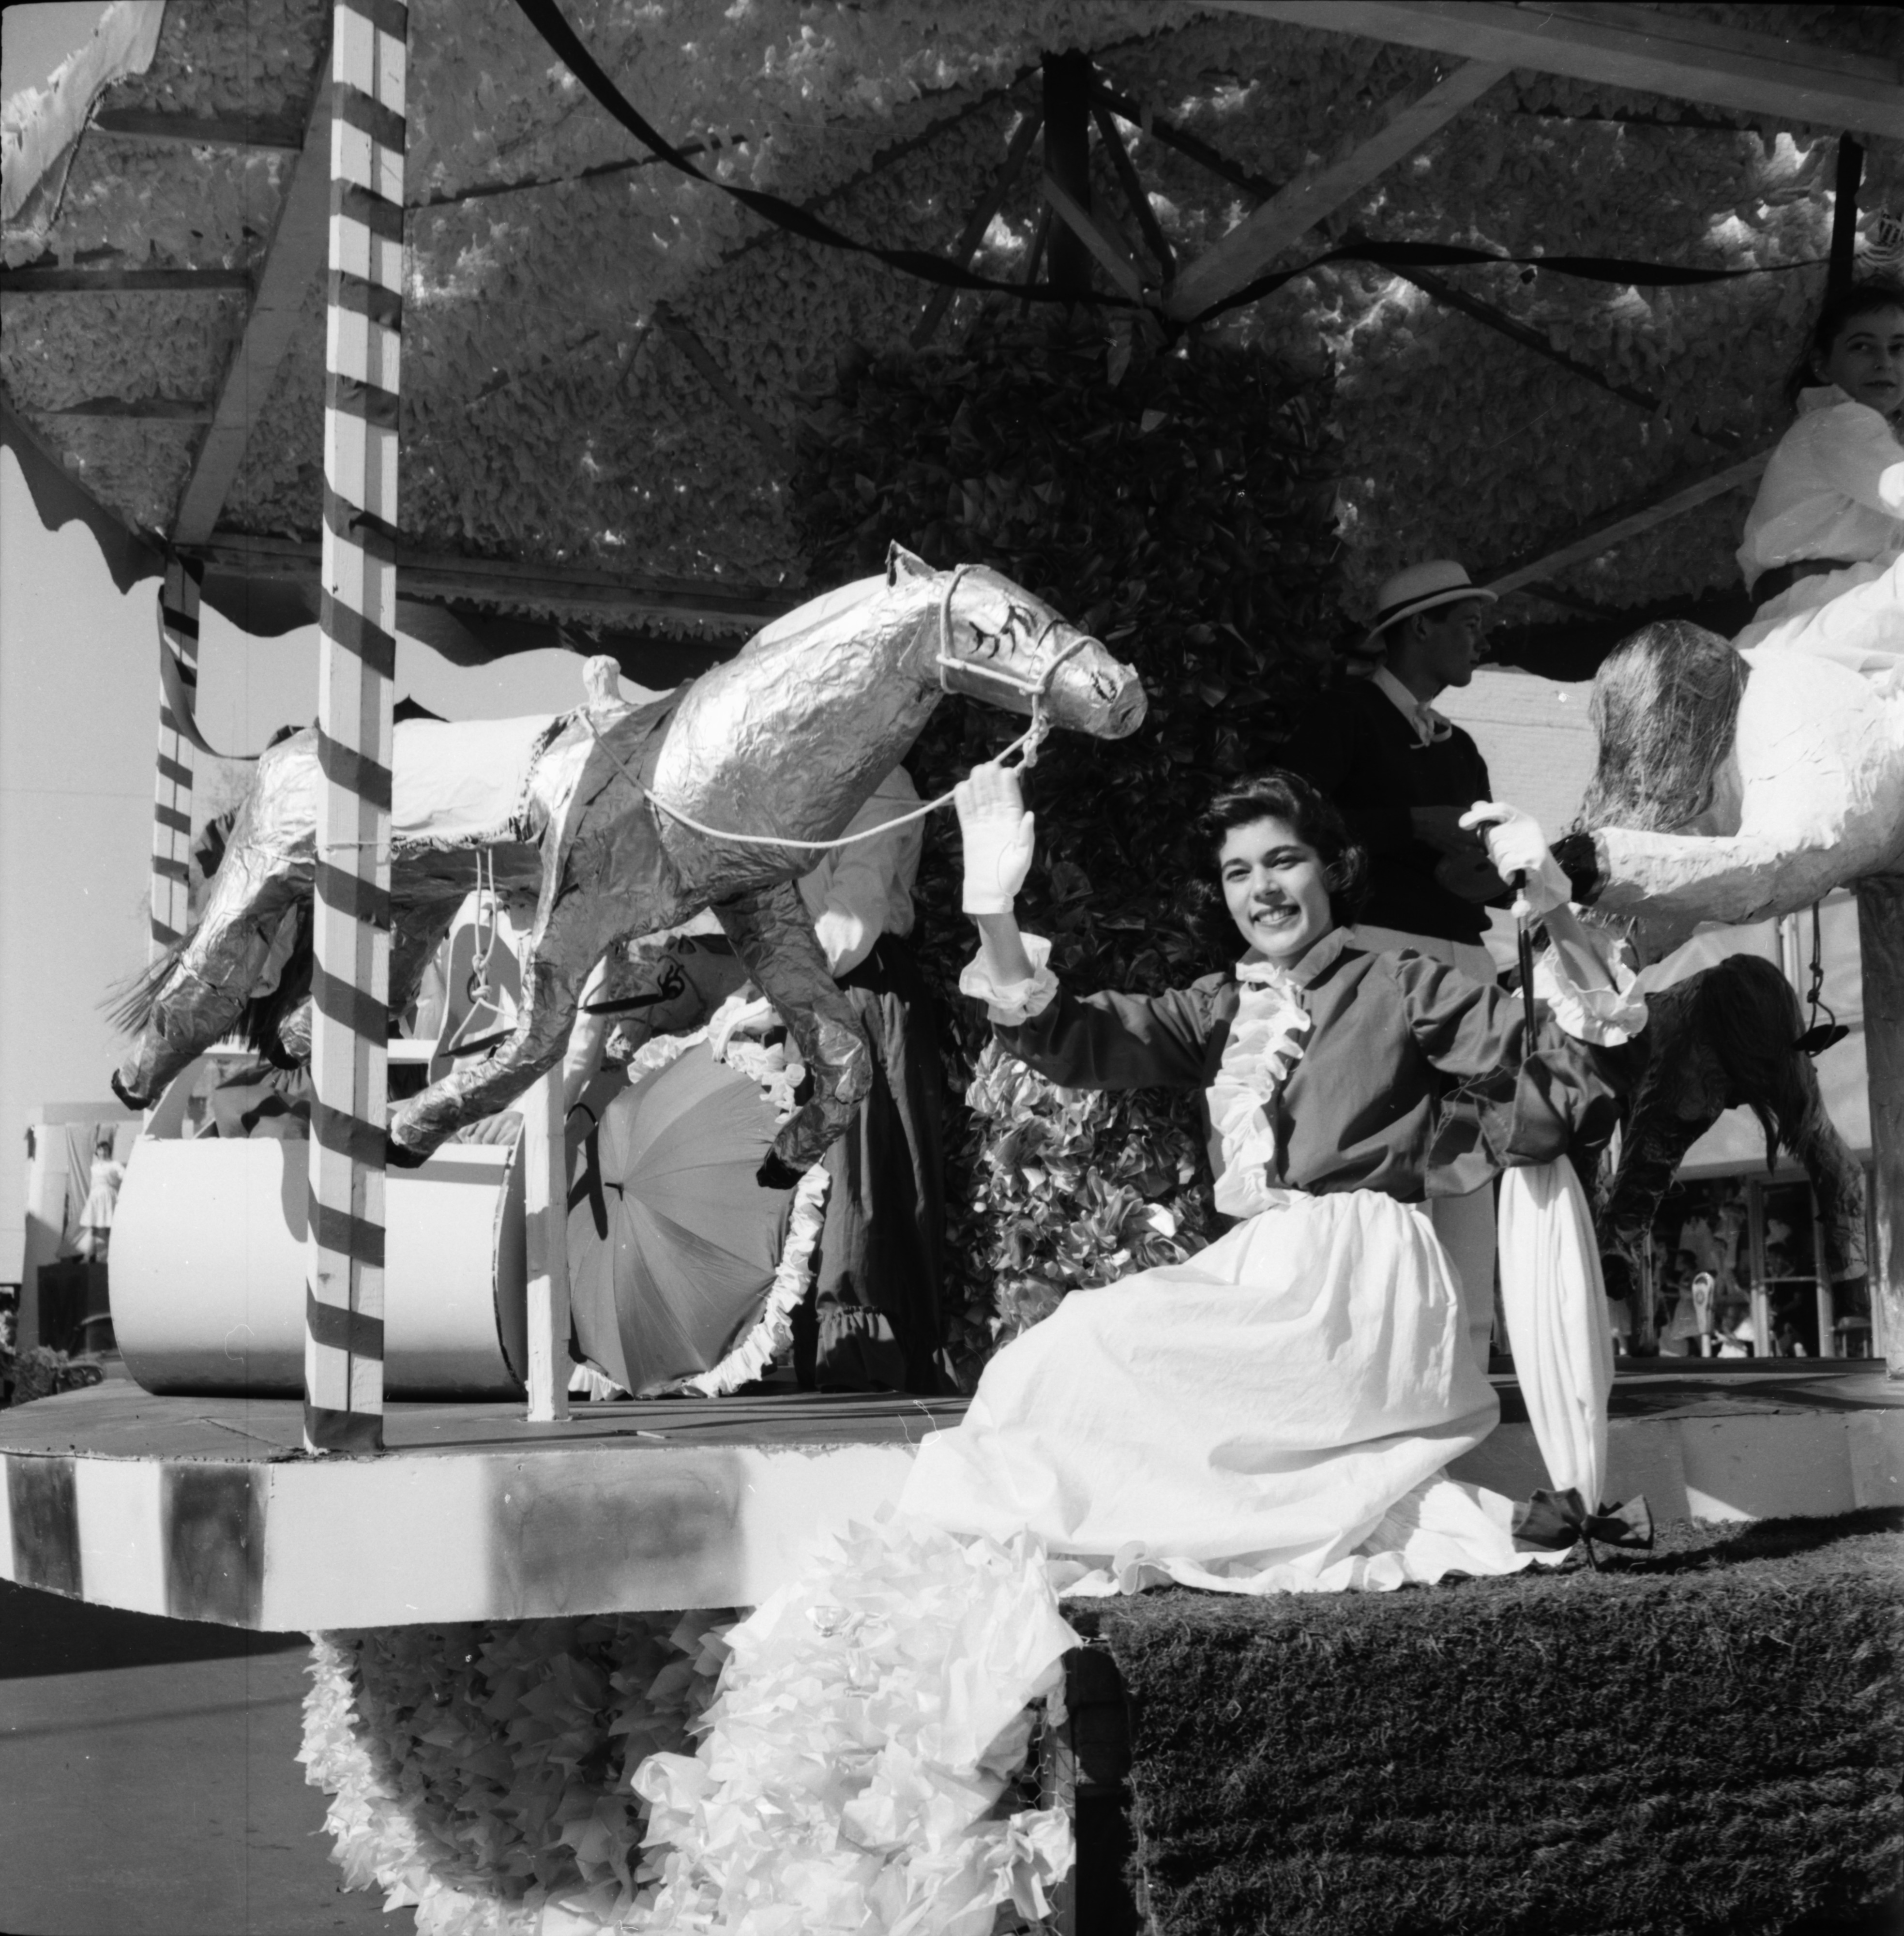 Phi Delta Theta and Betsy Barbour Float in the Michigras Parade, April 1958 image